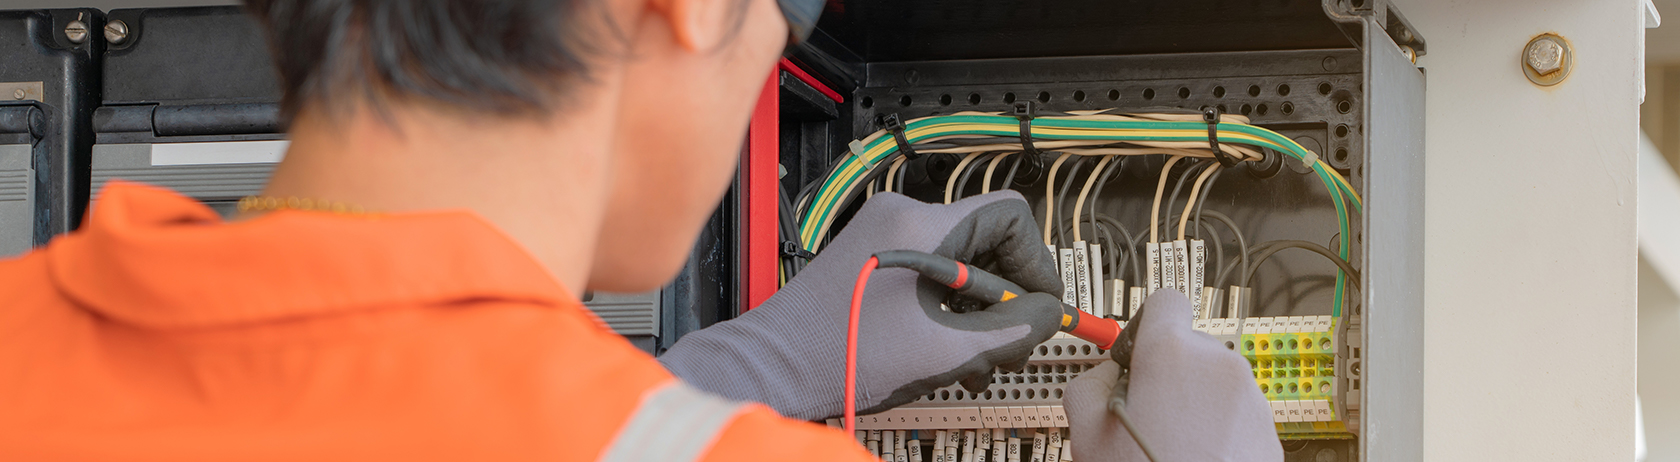 Electrical technician examining a cable junction box using zip tie cable management